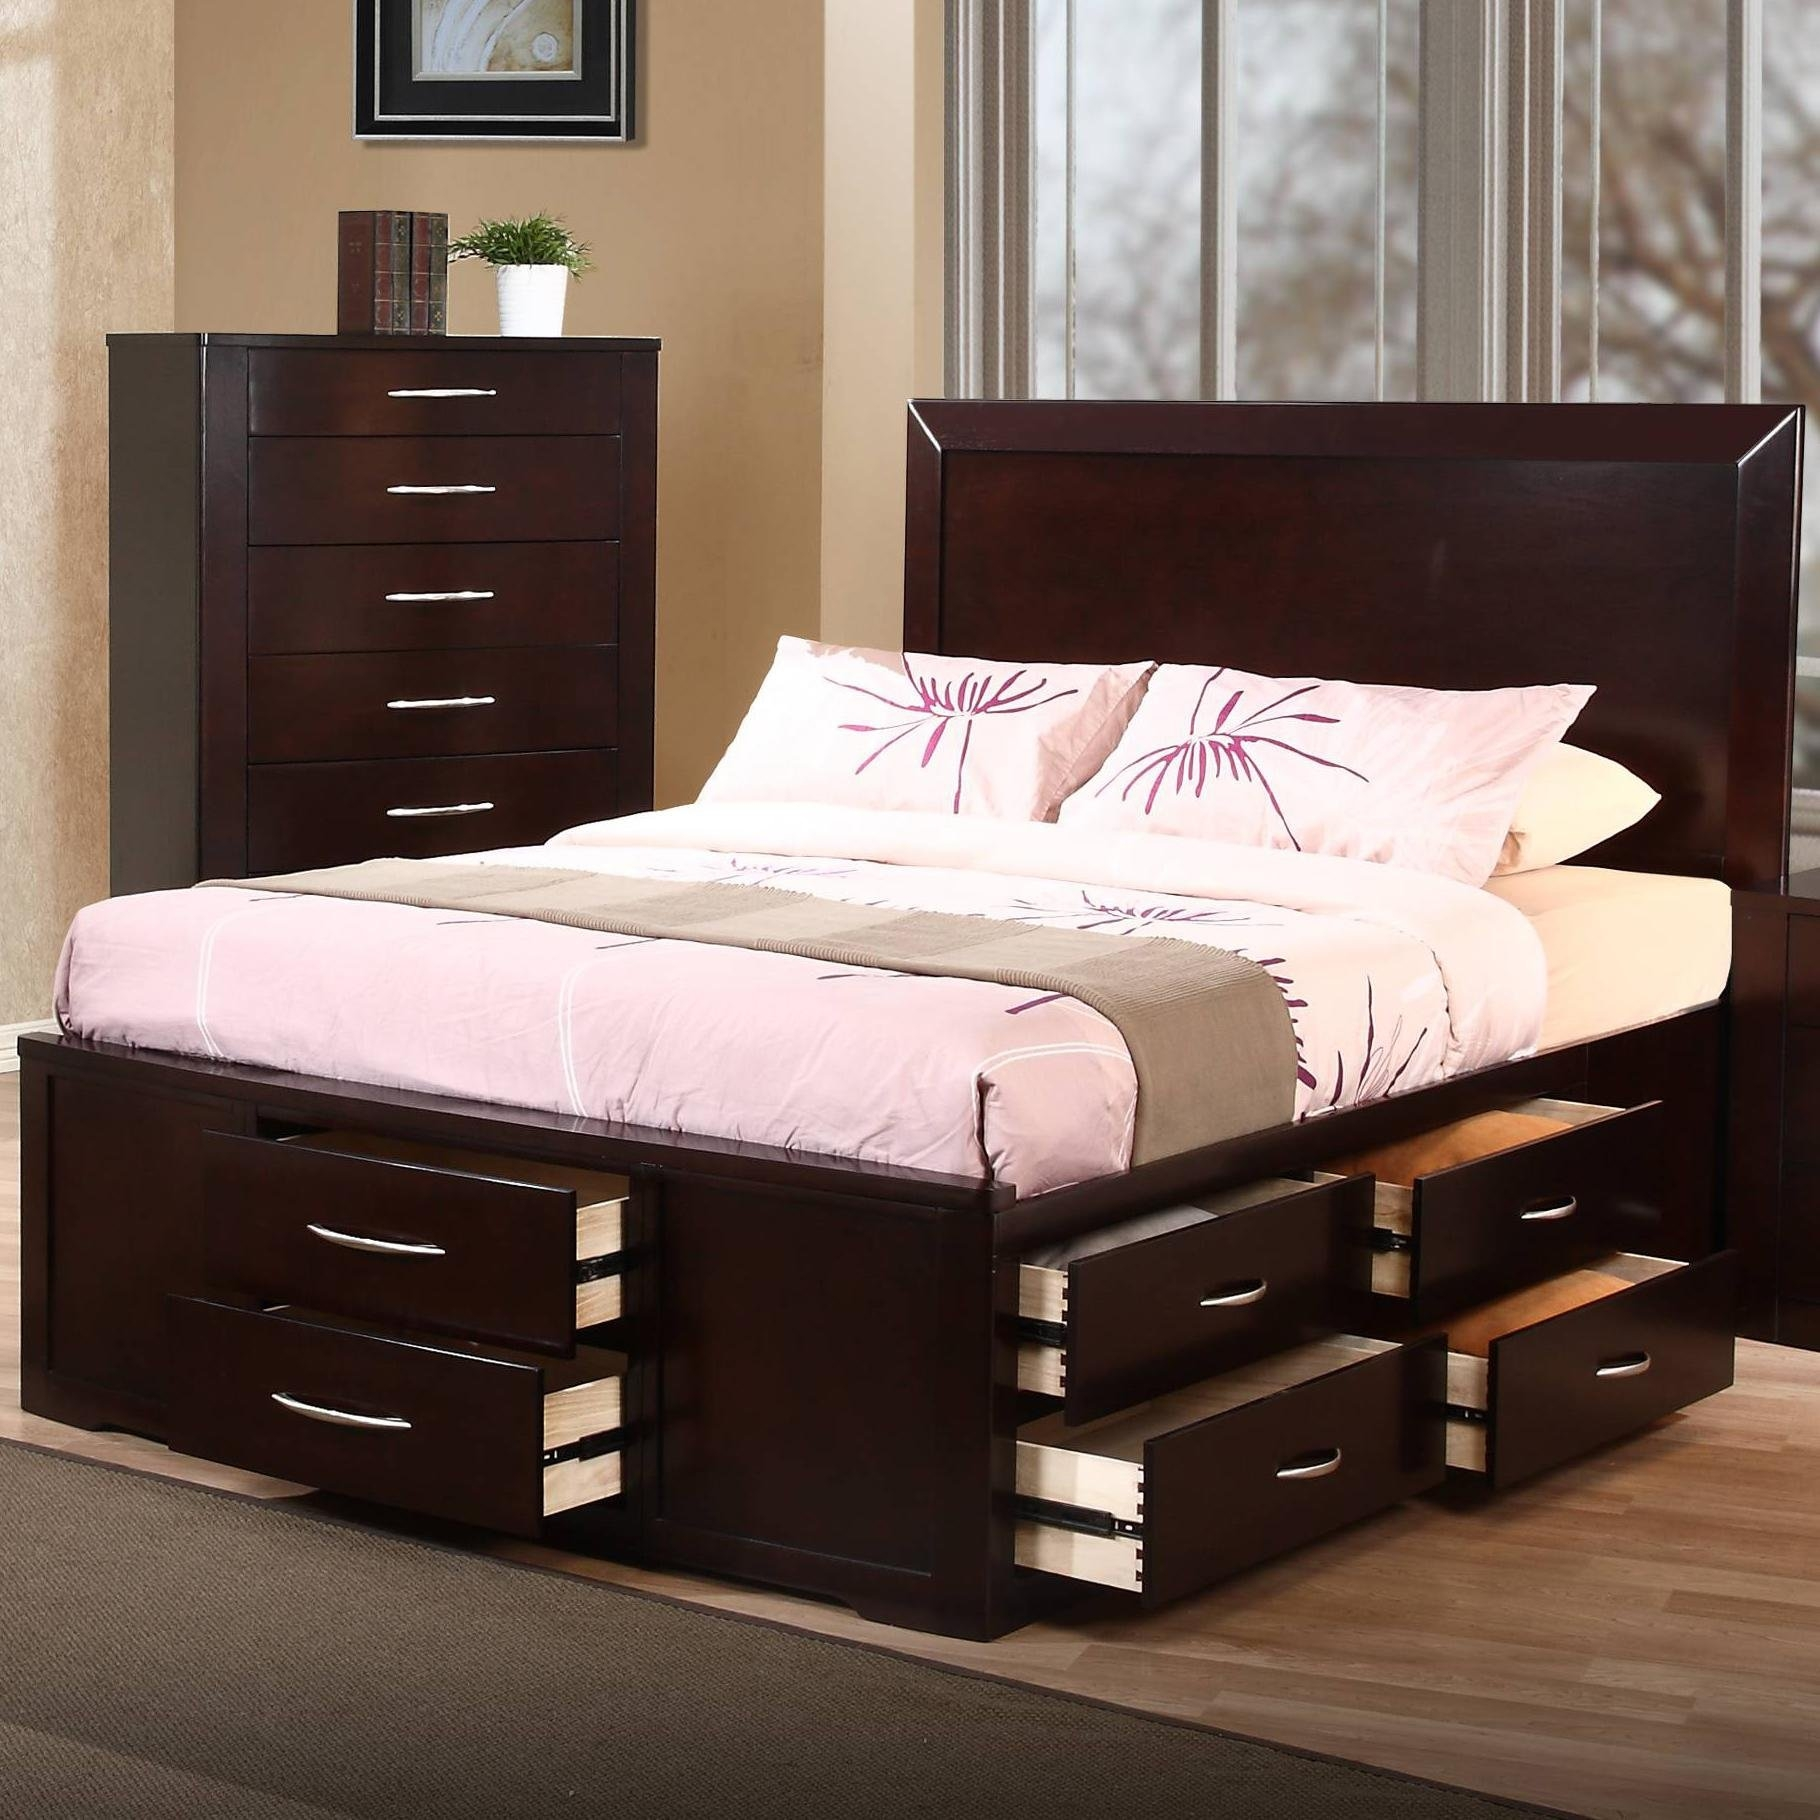 Solid Wood Bed Frames With Storage